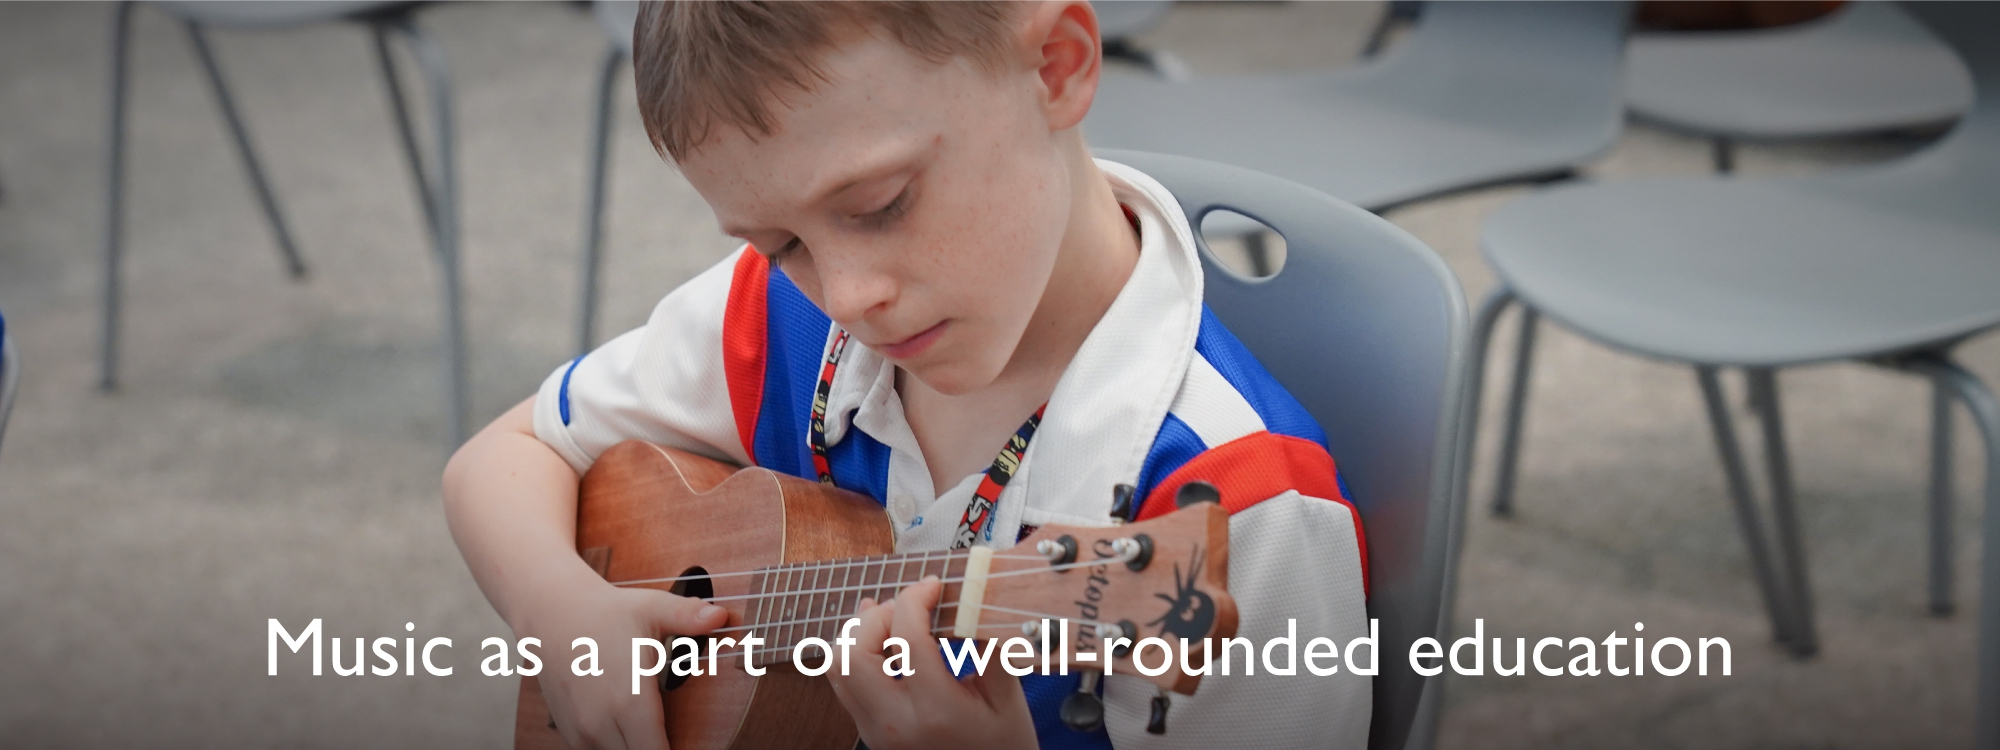 Music as a part of a well-rounded education.